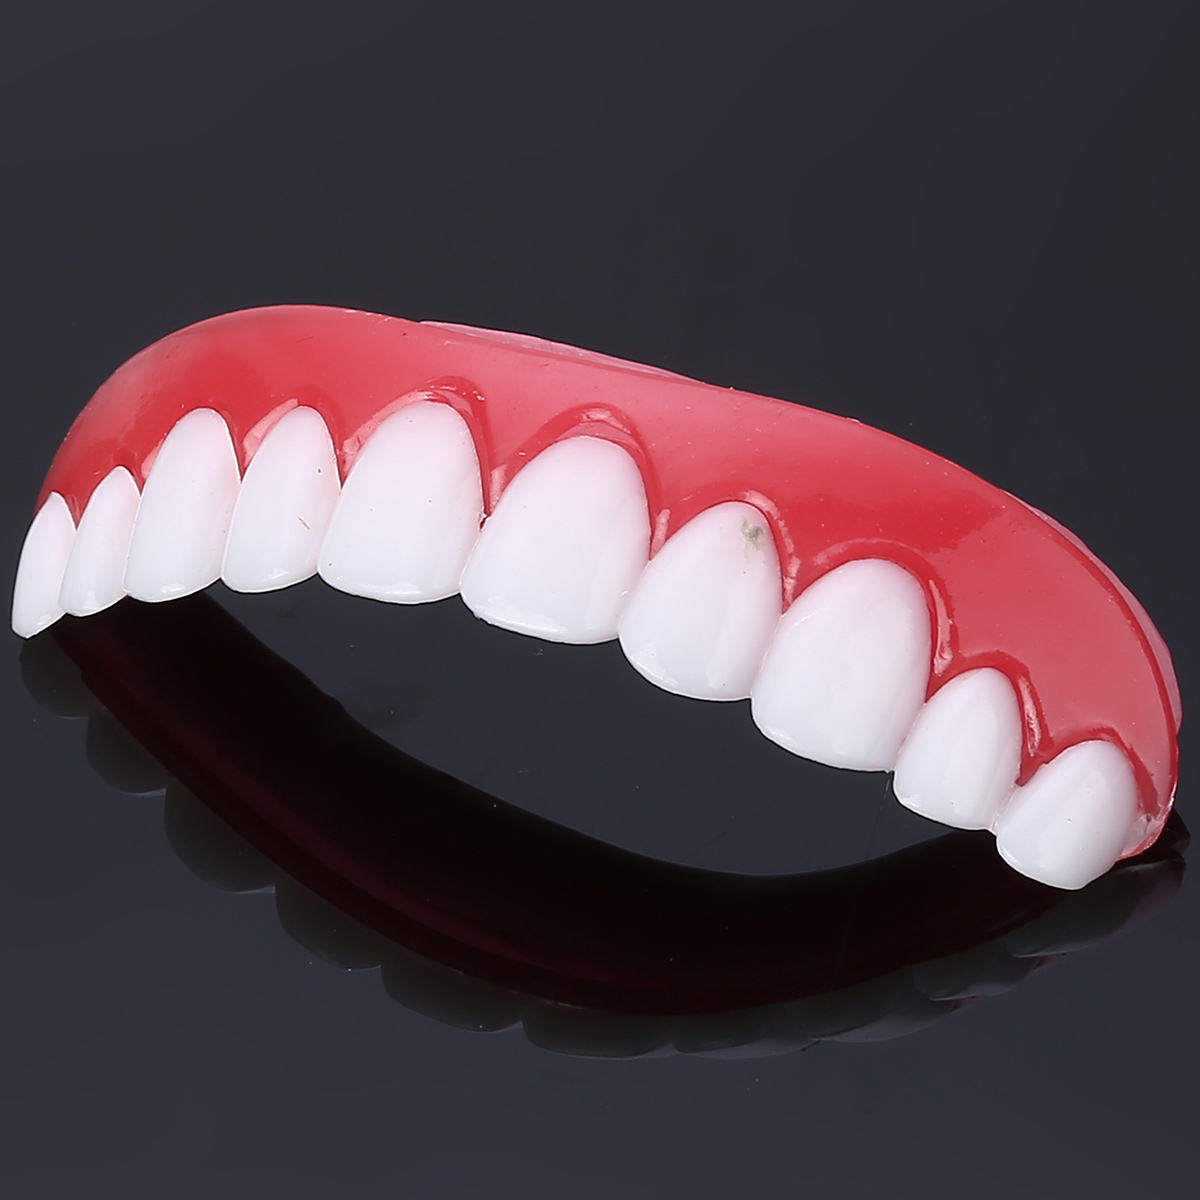 PP Smile Teeth Veneer Upper Tooth Cover Perfect Top Teeth Veneer Snap Top Veneers Instant Cosmetic Teeth Cover Whitening Braces